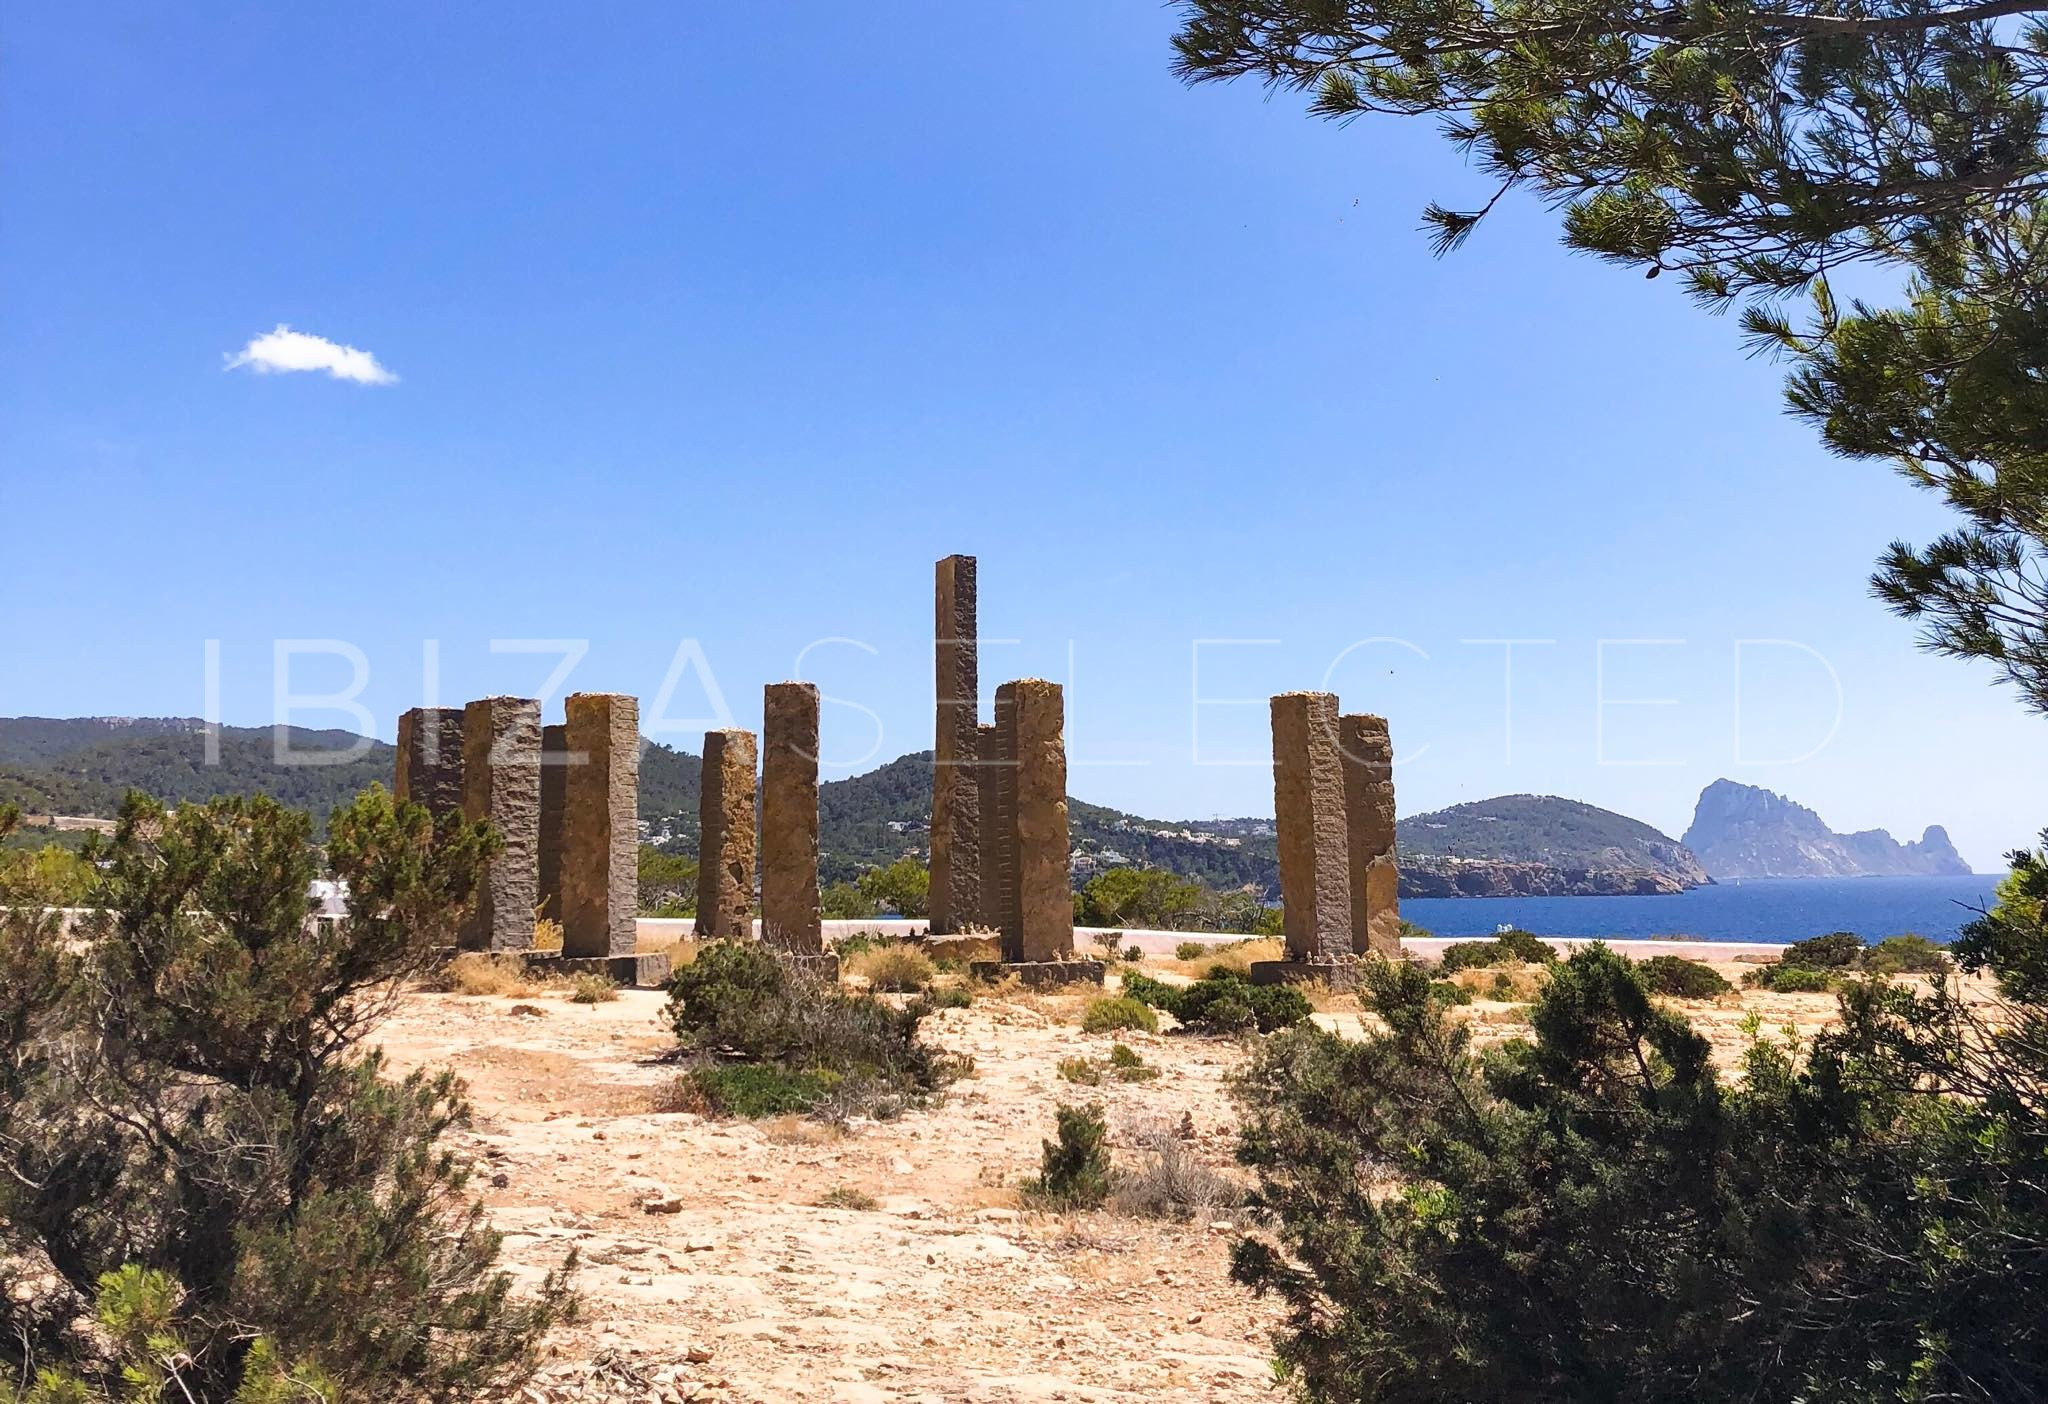 The healing energy field Ibiza's – Experience the magical places of ancient legends & myths